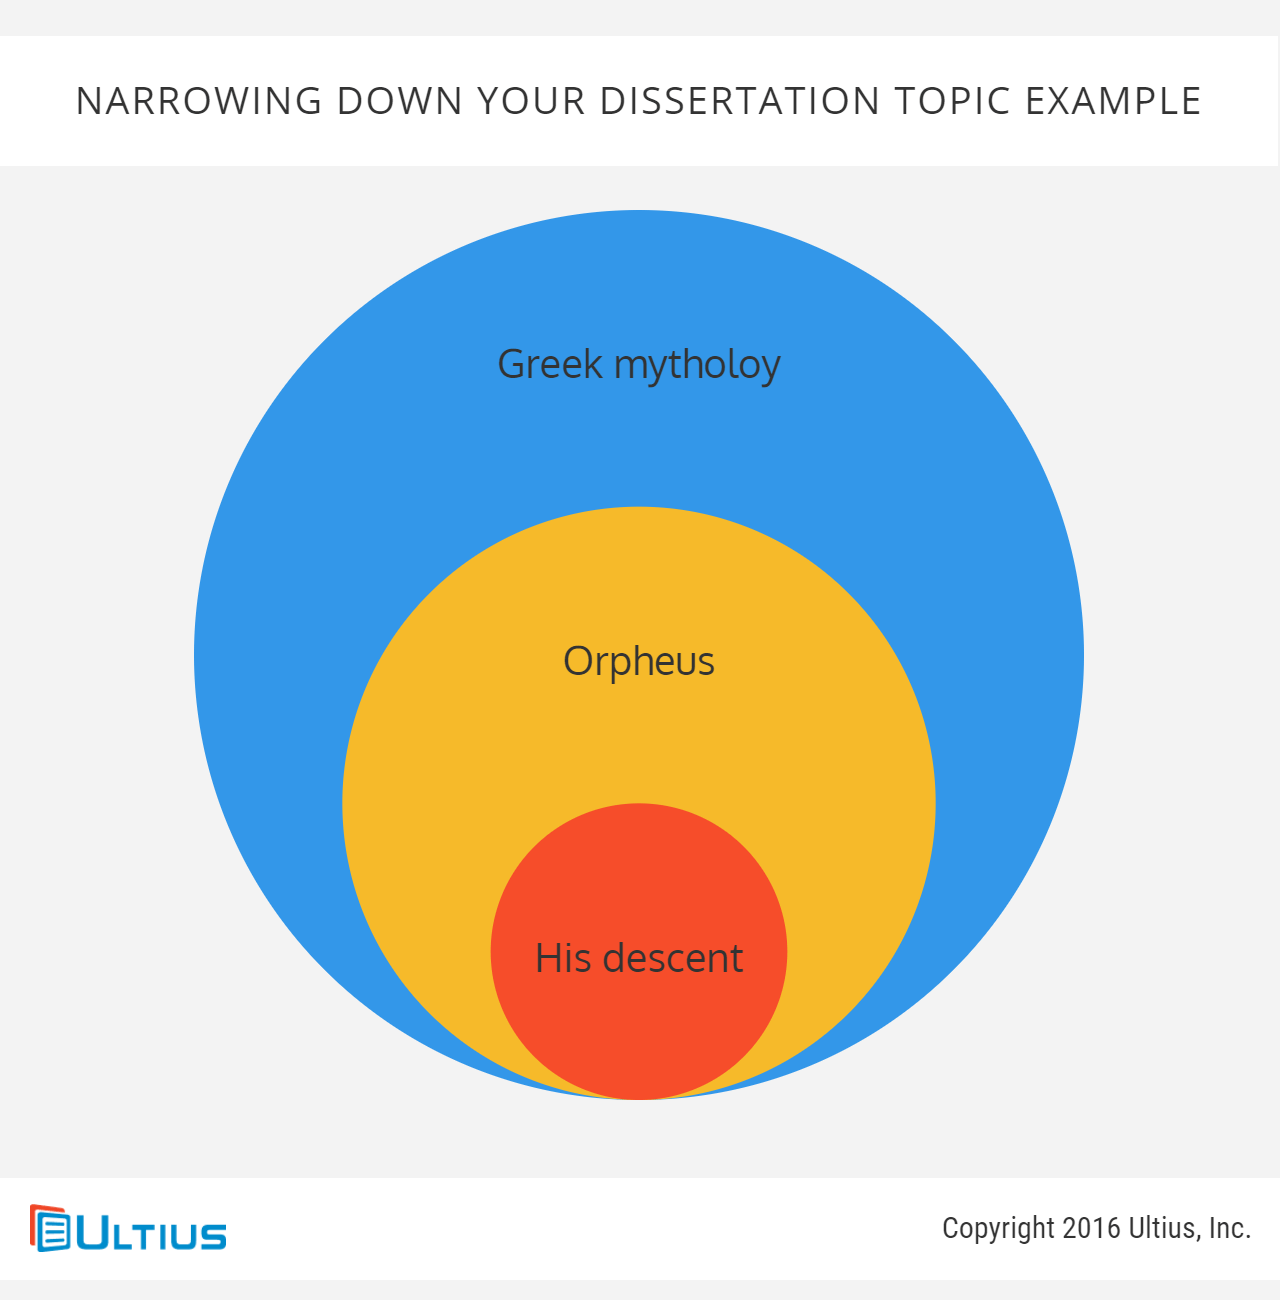 Narrowing down your dissertation topic - example